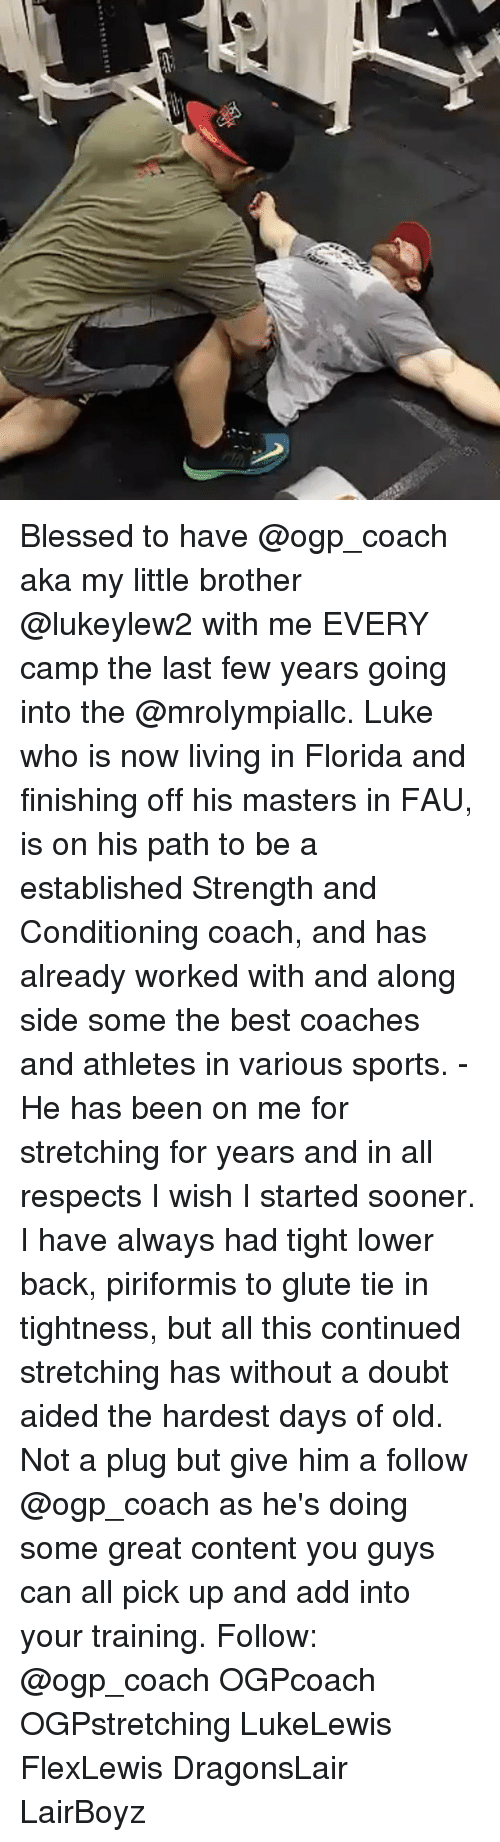 Blessed, Memes, and Sports: Blessed to have @ogp_coach aka my little brother @lukeylew2 with me EVERY camp the last few years going into the @mrolympiallc. Luke who is now living in Florida and finishing off his masters in FAU, is on his path to be a established Strength and Conditioning coach, and has already worked with and along side some the best coaches and athletes in various sports. - He has been on me for stretching for years and in all respects I wish I started sooner. I have always had tight lower back, piriformis to glute tie in tightness, but all this continued stretching has without a doubt aided the hardest days of old. Not a plug but give him a follow @ogp_coach as he's doing some great content you guys can all pick up and add into your training. Follow: @ogp_coach OGPcoach OGPstretching LukeLewis FlexLewis DragonsLair LairBoyz